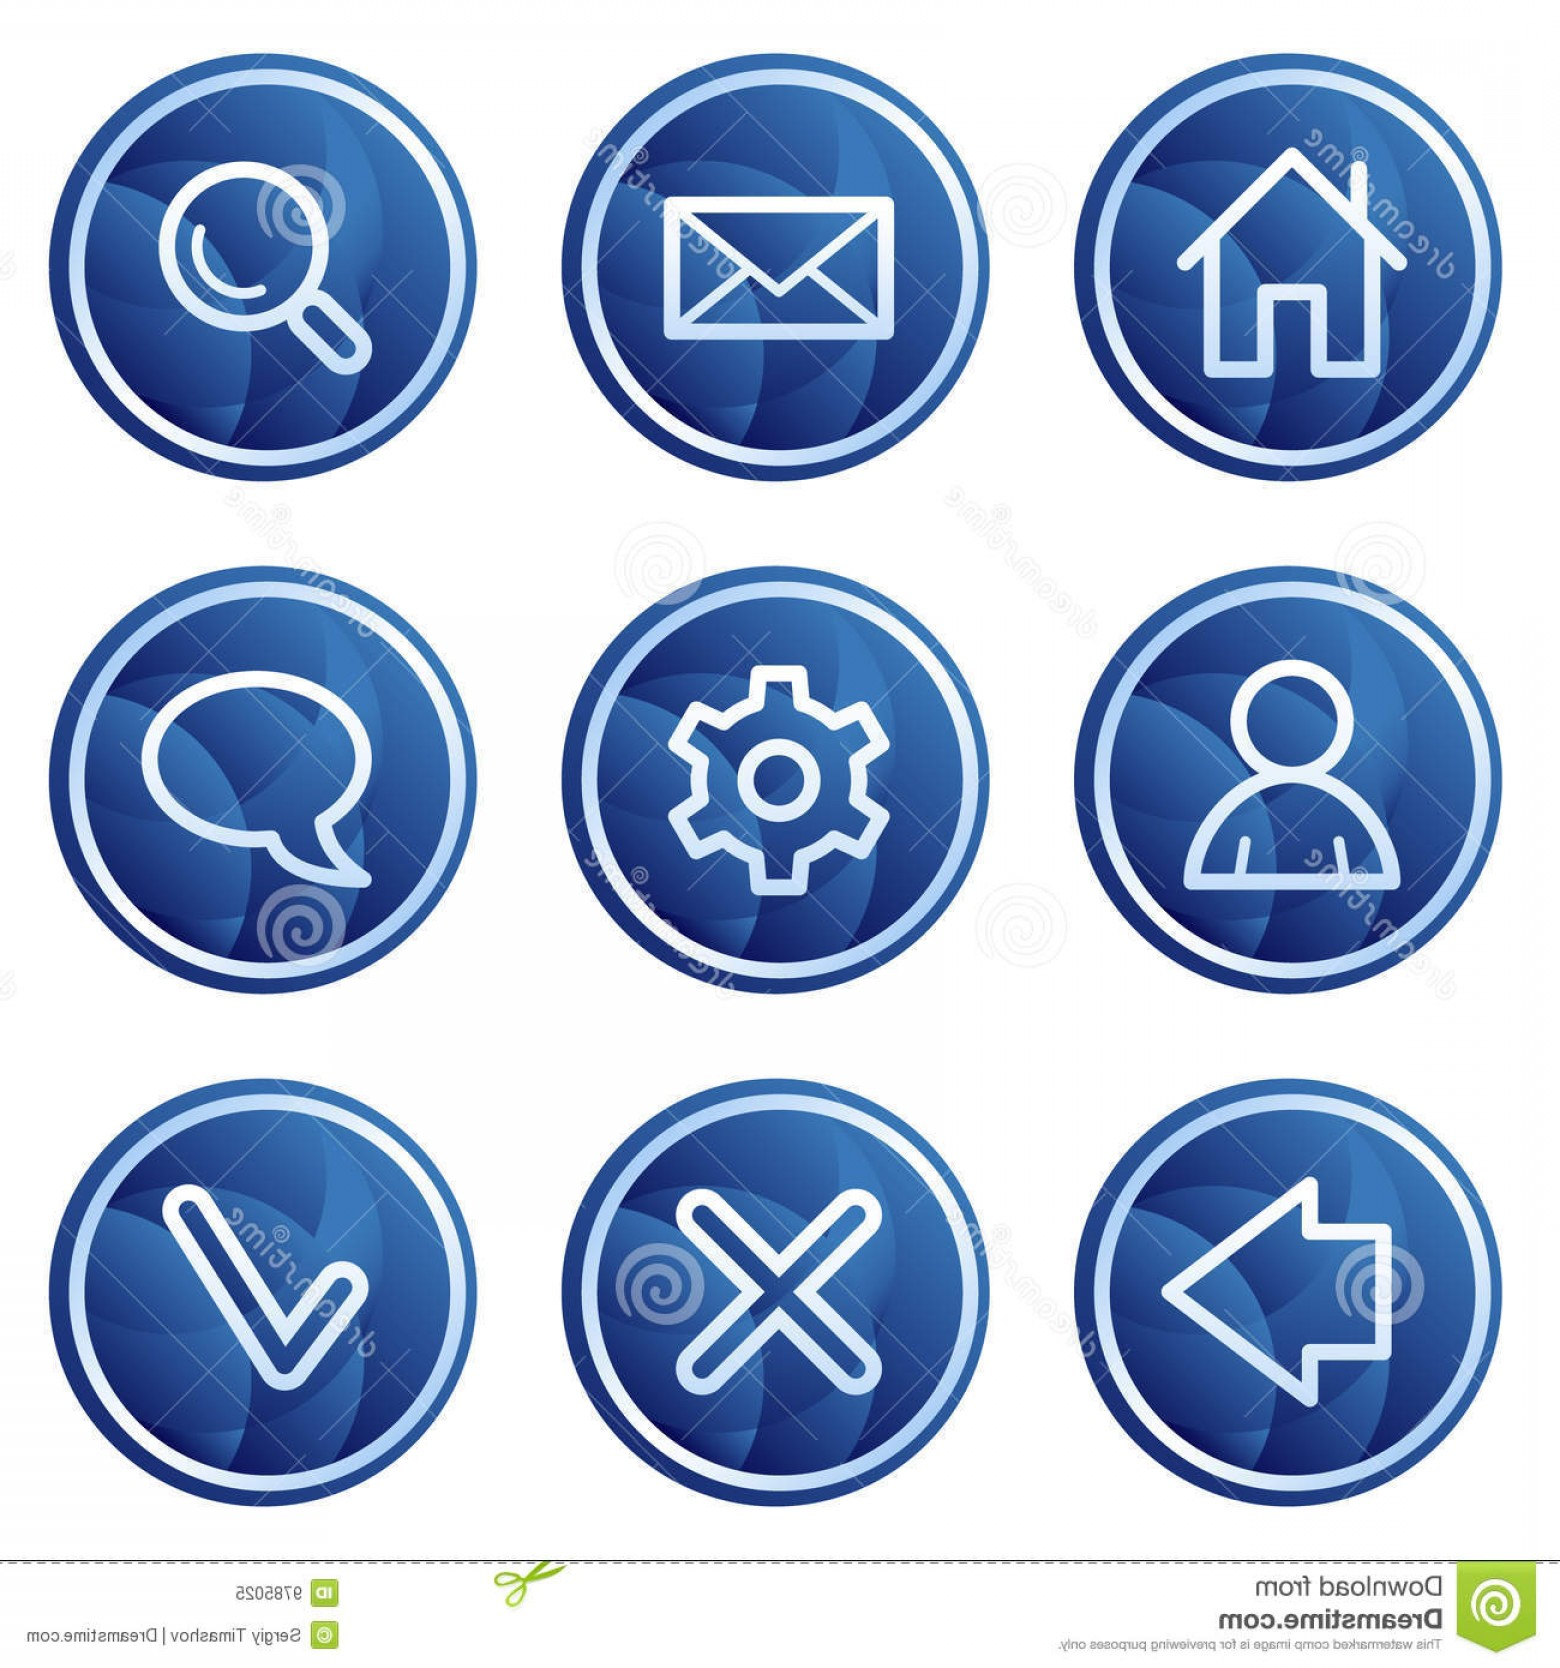 Contact Button Icons Vector Free: Royalty Free Stock Photo Basic Web Icons Blue Circle Buttons Series Image